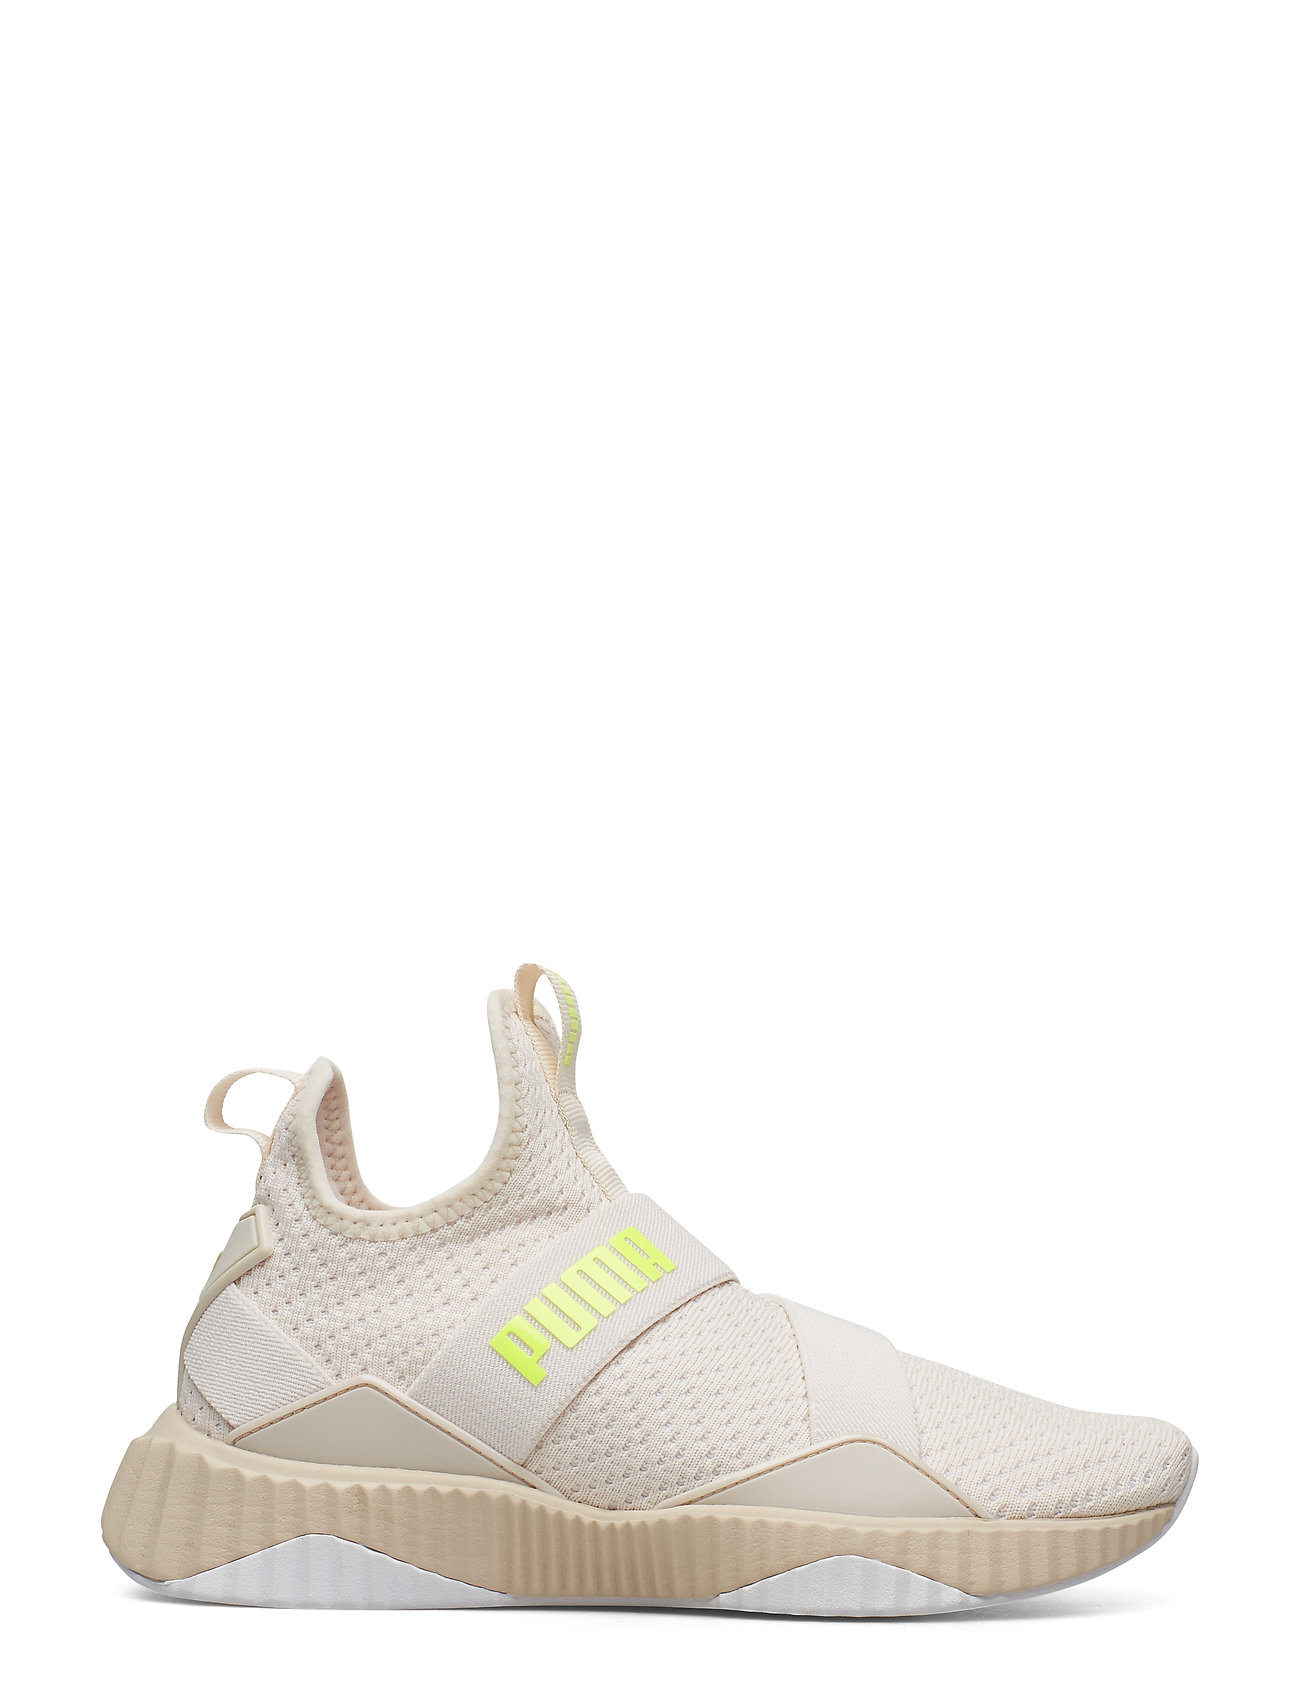 Defy Mid Core Wns High top Sneakers Creme PUMA